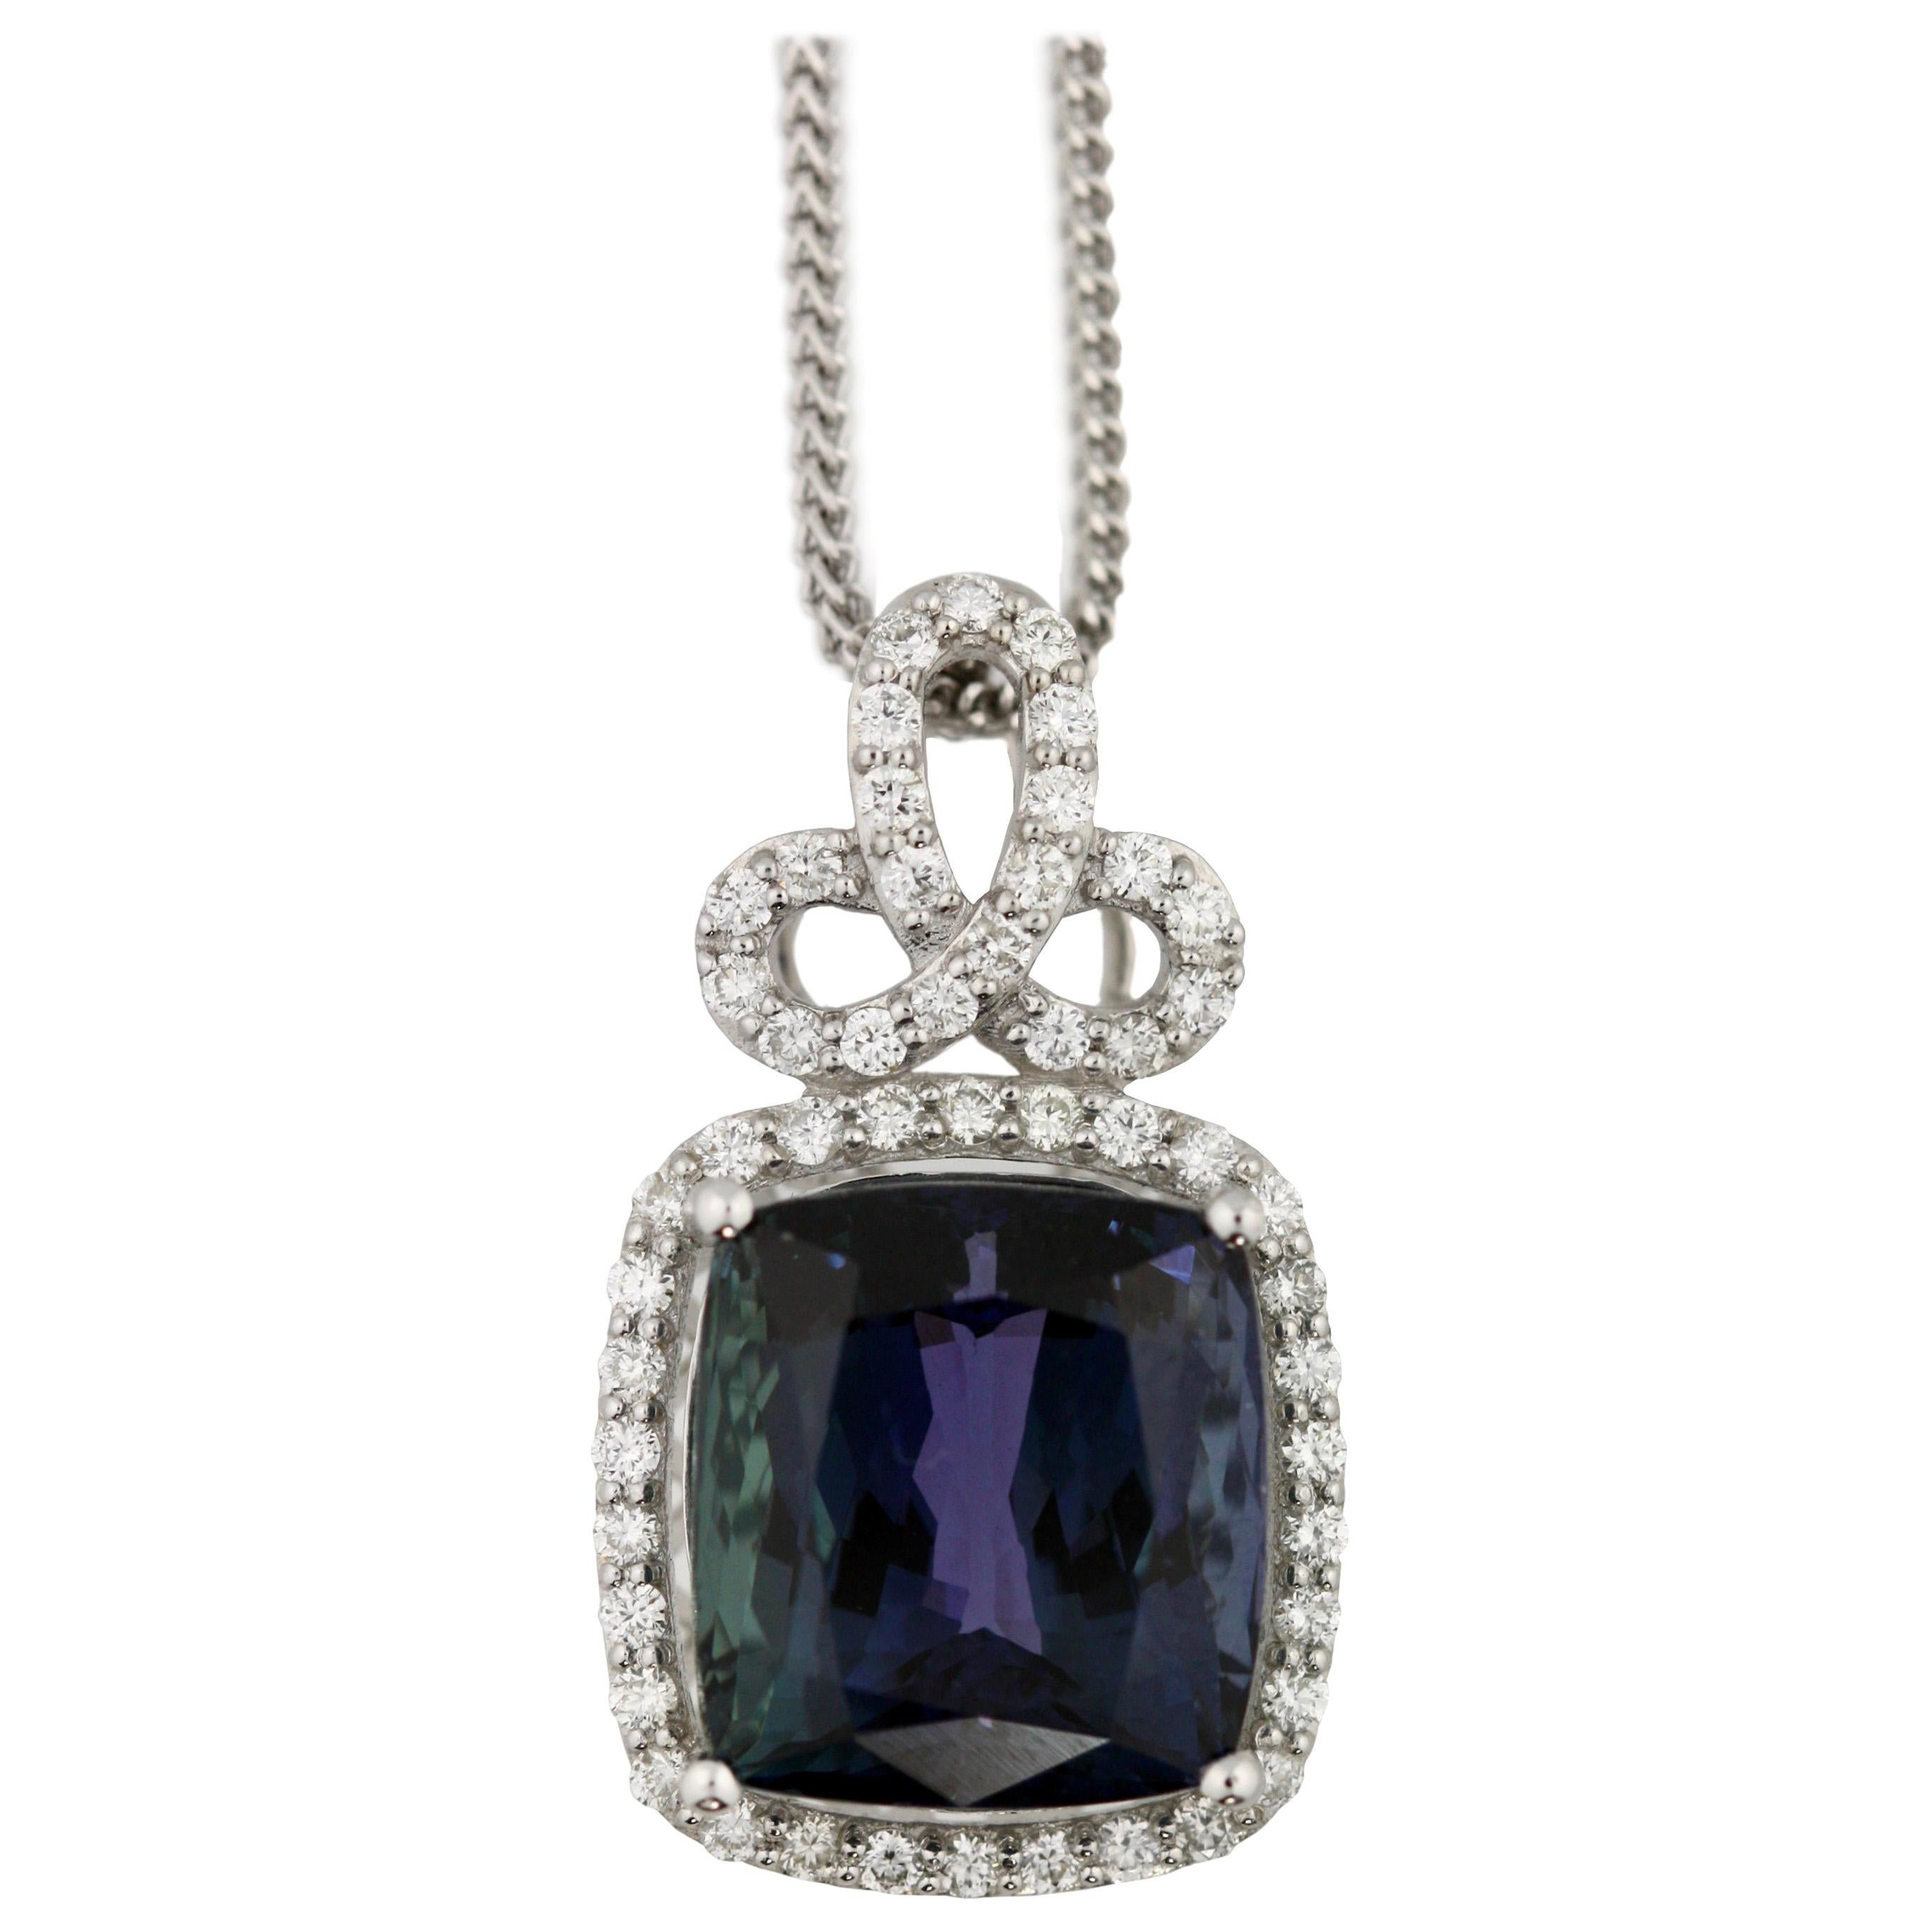 Platinum, Tanzanite and Diamond Pendant-Necklace